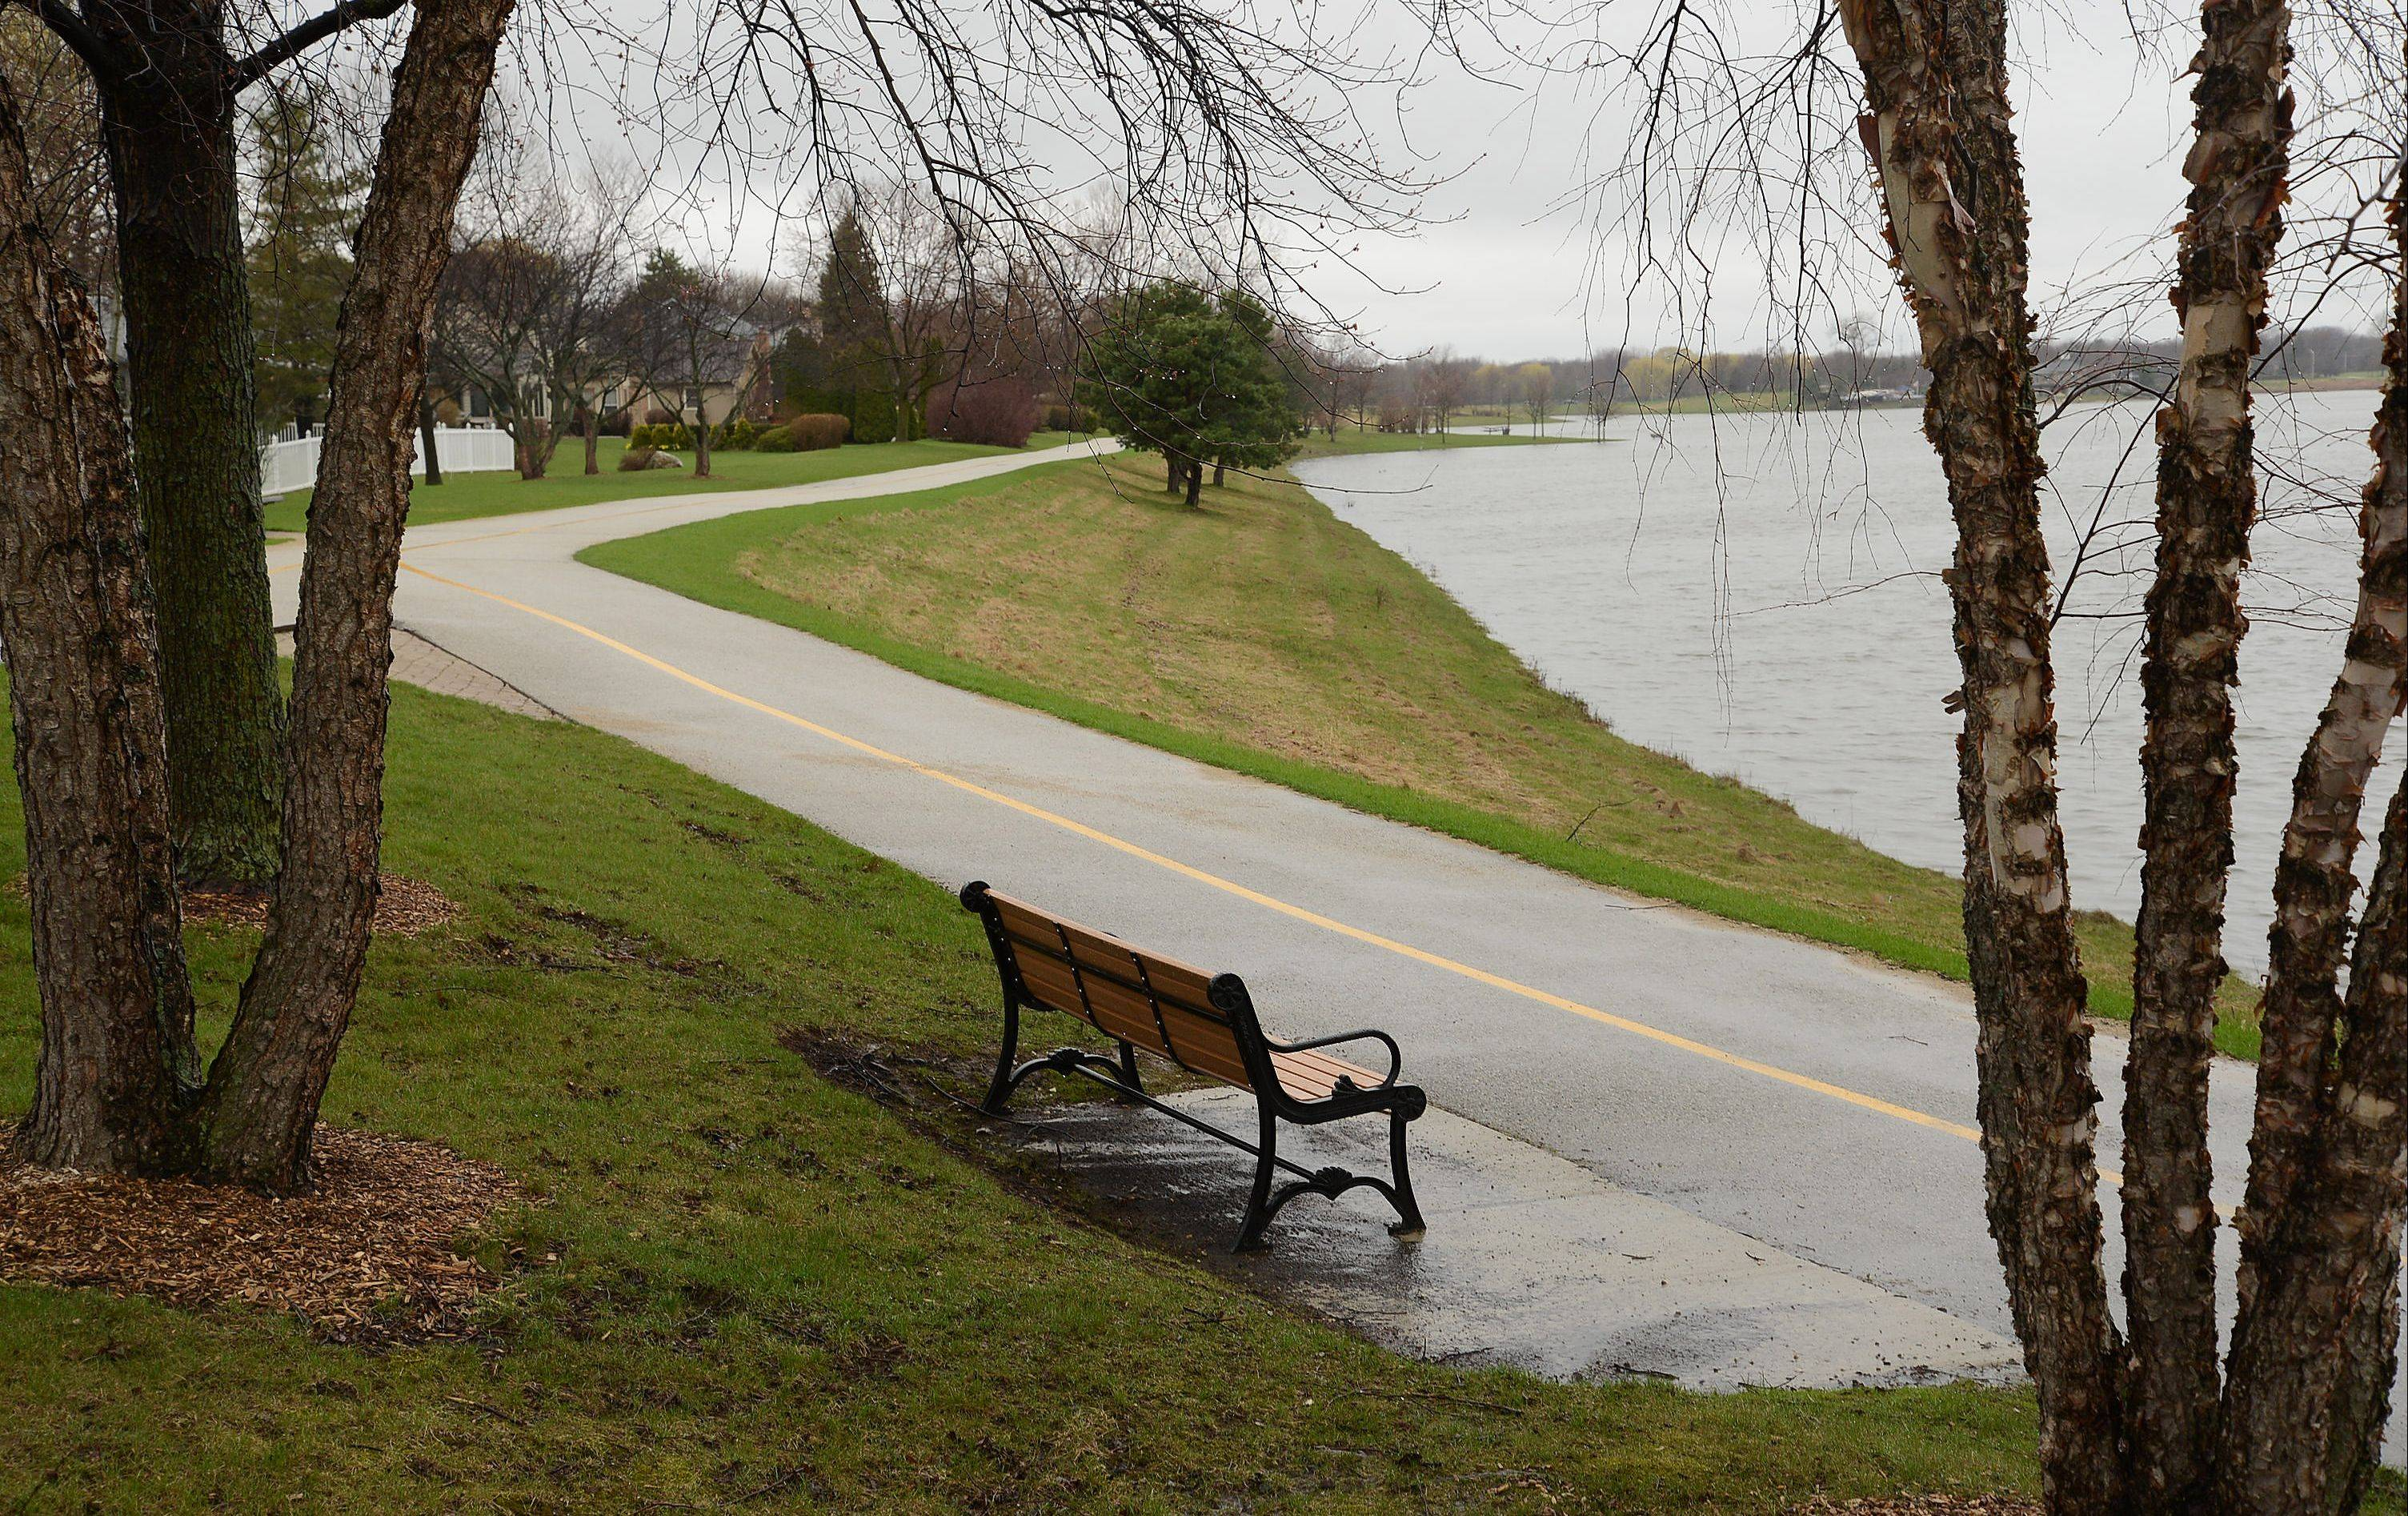 The peaceful walking path around Lake Arlington is getting too busy in the evening and on nice days, say nearby residents not surprised by the death of a walker hit by a bicyclist last month.